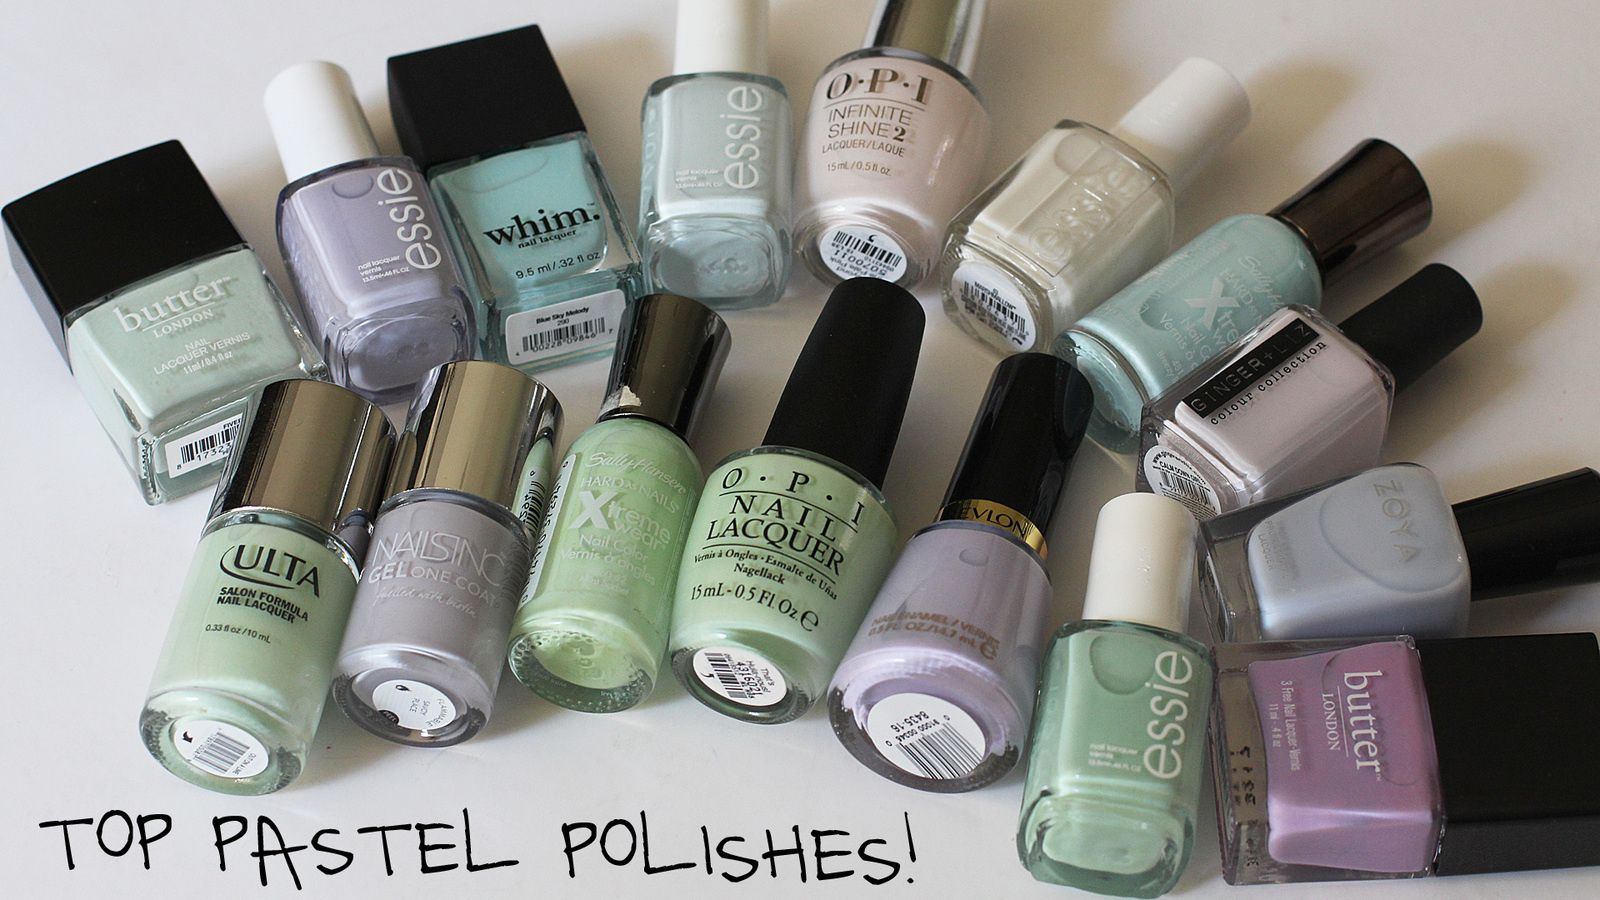 Top Pastel Polishes! Essie, OPI, Whim, Butter London & More!